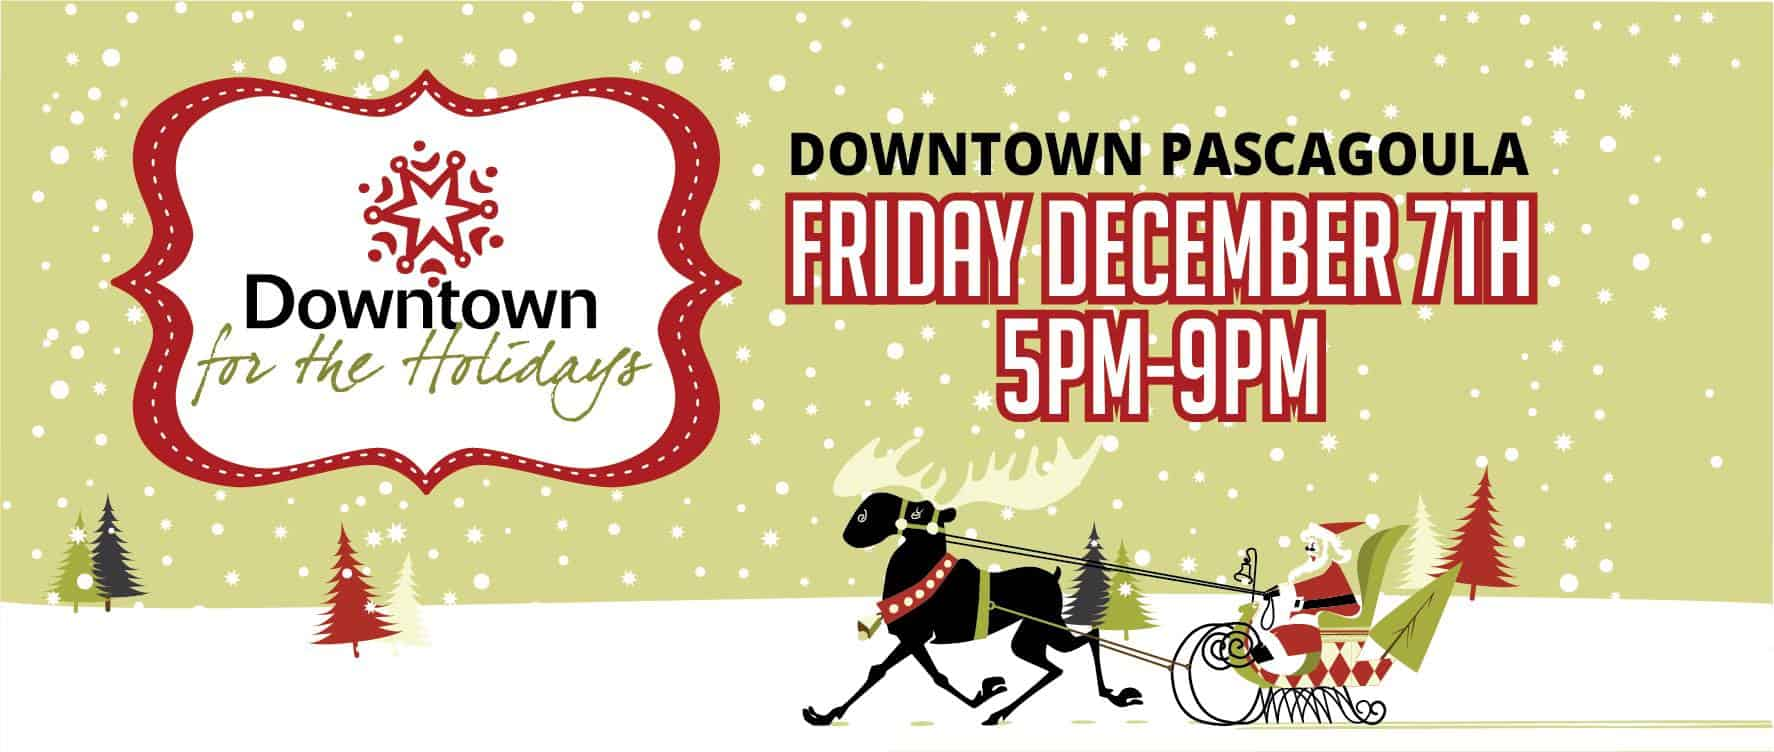 Www.Pascagoula Christmas Parade 2020 Enjoy Downtown for the Holidays in Pascagoula on Dec. 7   ourmshome